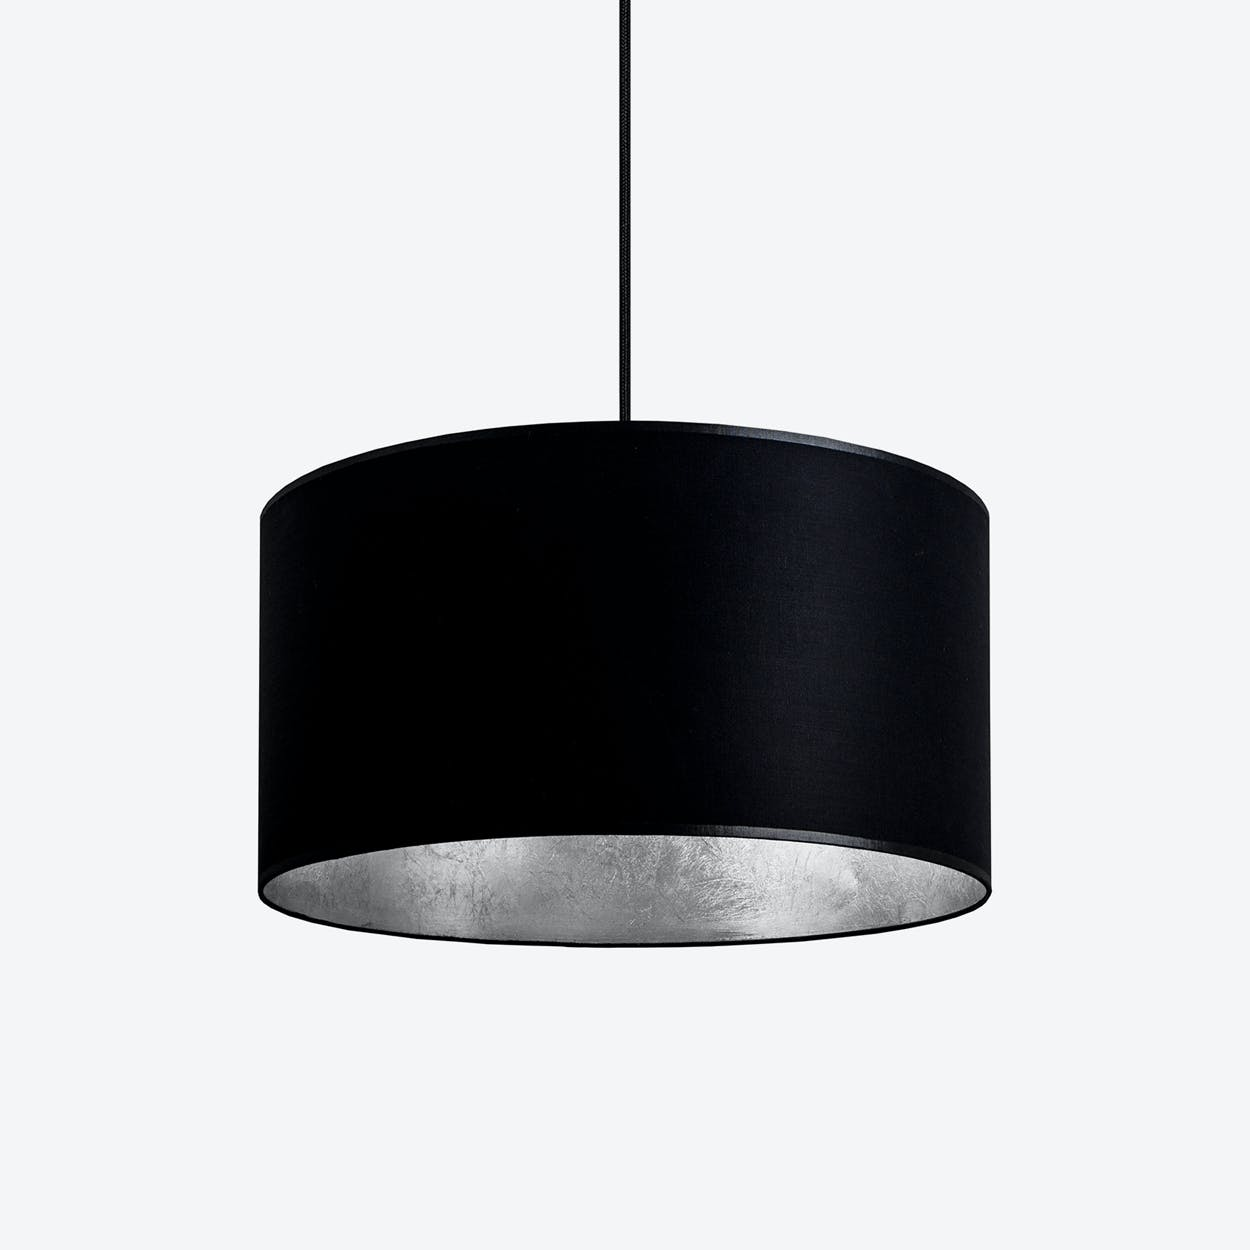 MIKA Medium Single Pendant Light in Black with Silver Leaf